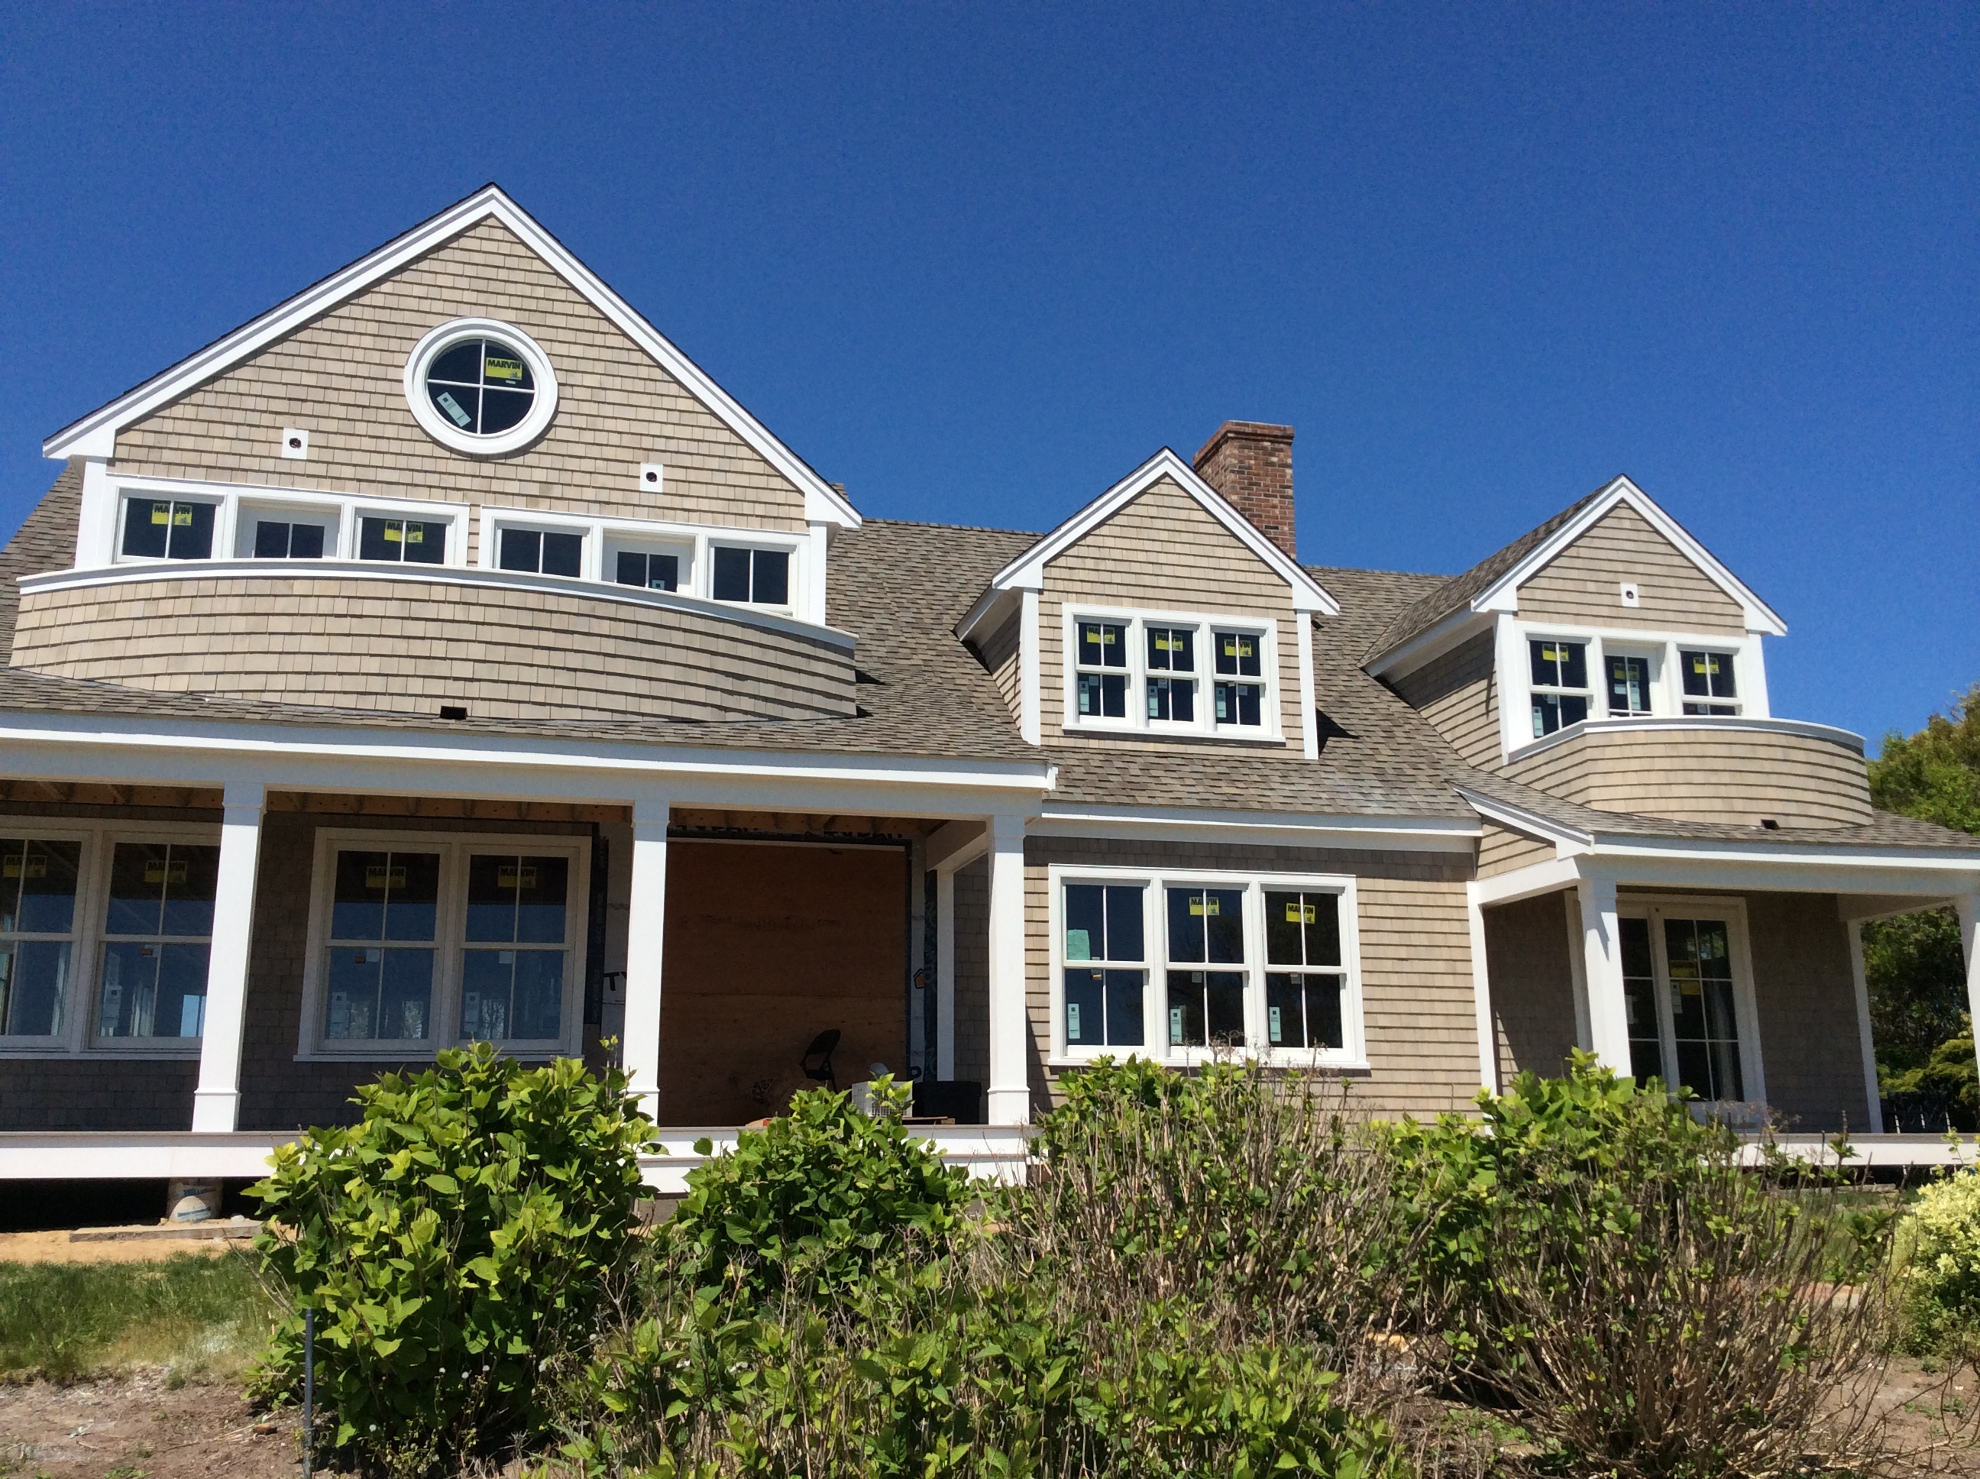 Good Newly Renovated Cape Cod Home With New Windows Siding Roofing